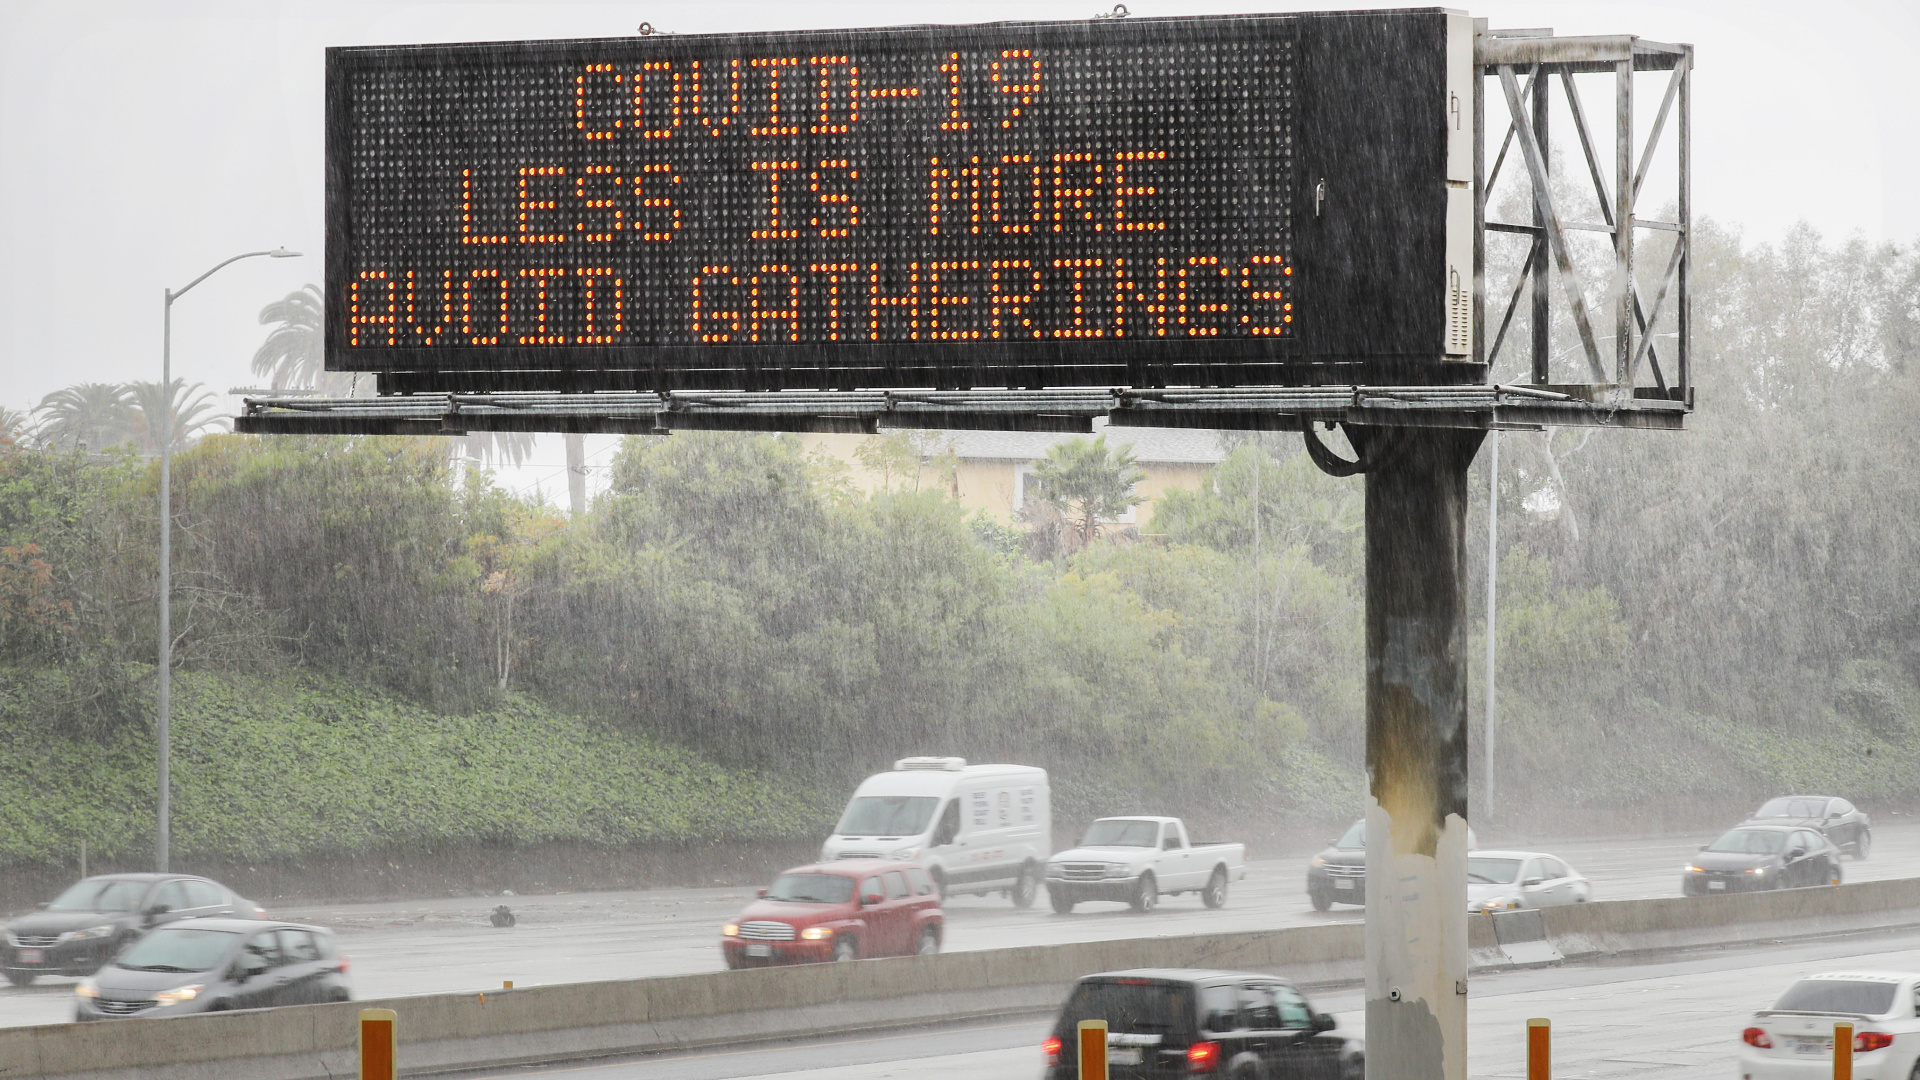 An electronic sign reads 'COVID-19 Less Is More Avoid Gatherings' along the I-10 Freeway on March 14, 2020, in Los Angeles. (Mario Tama/Getty Images)